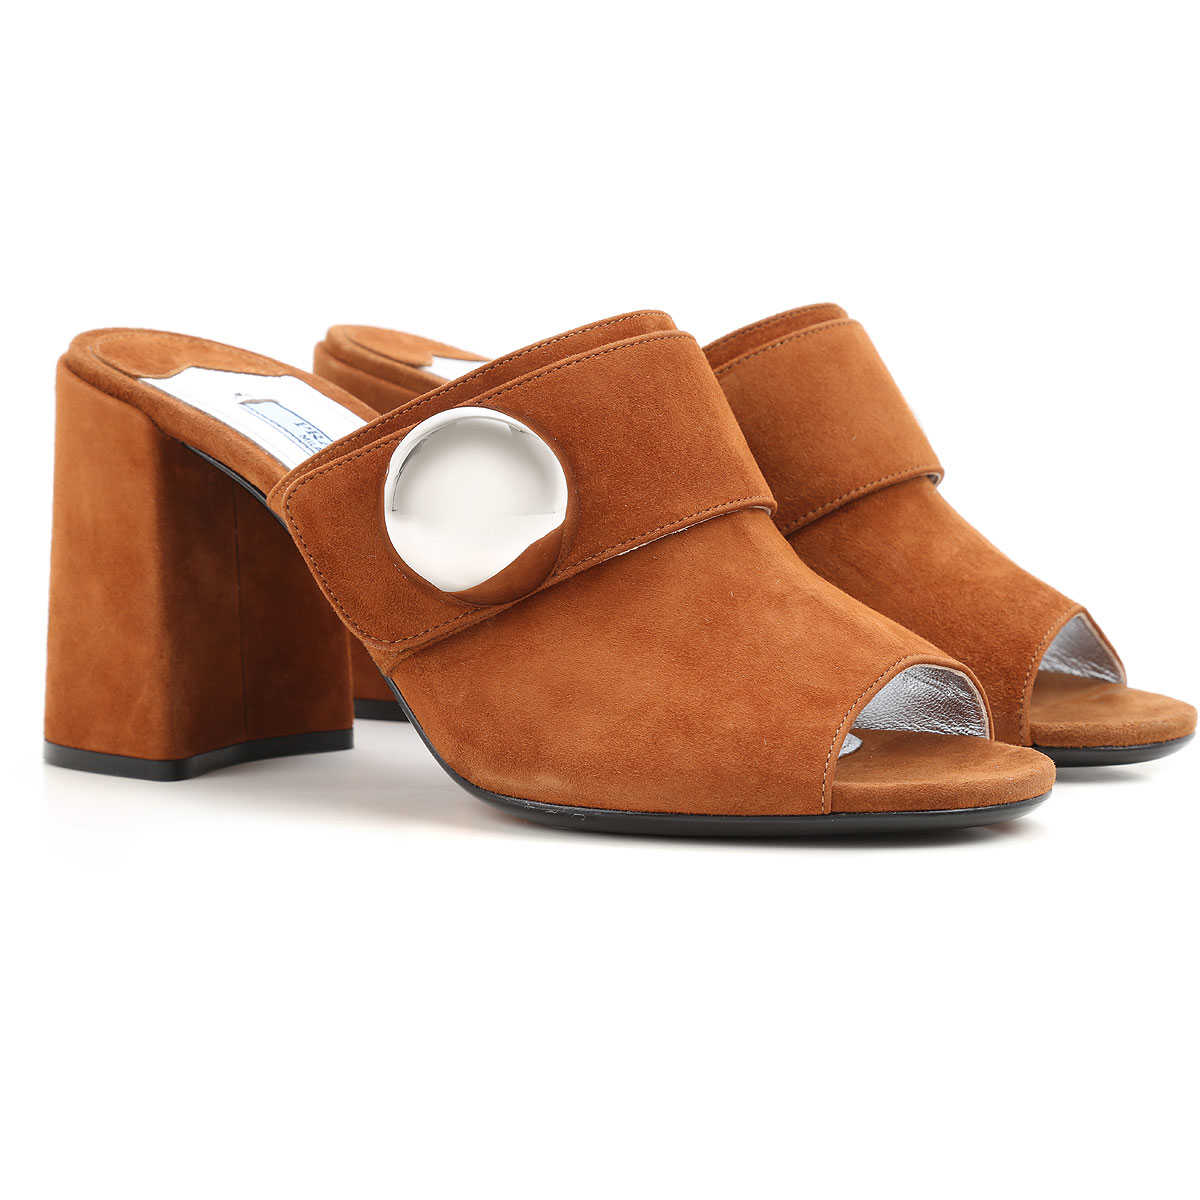 Prada Sandals for Women in Outlet Palisander USA - GOOFASH